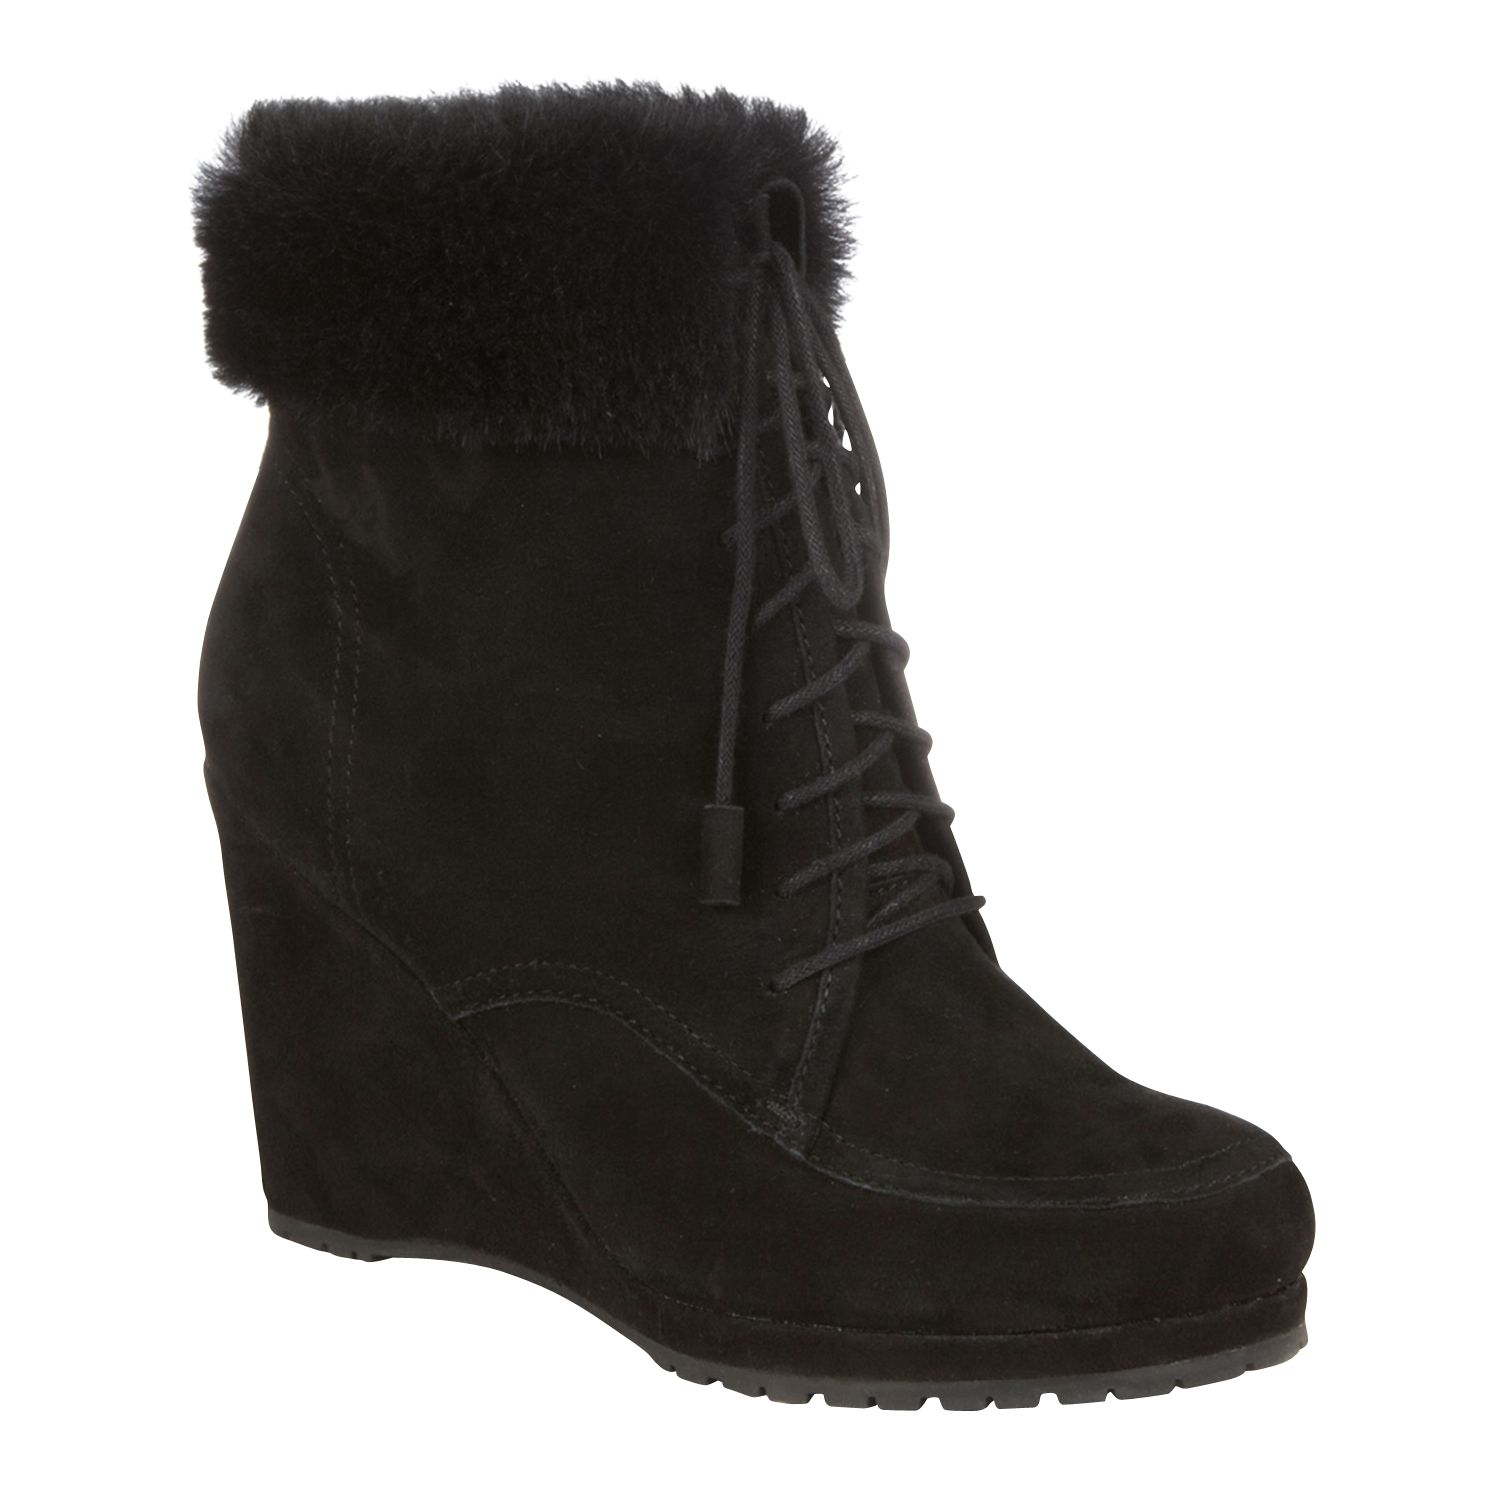 LK Bennett Charing Fur Trim Lace Up Wedge Ankle Boots, Black